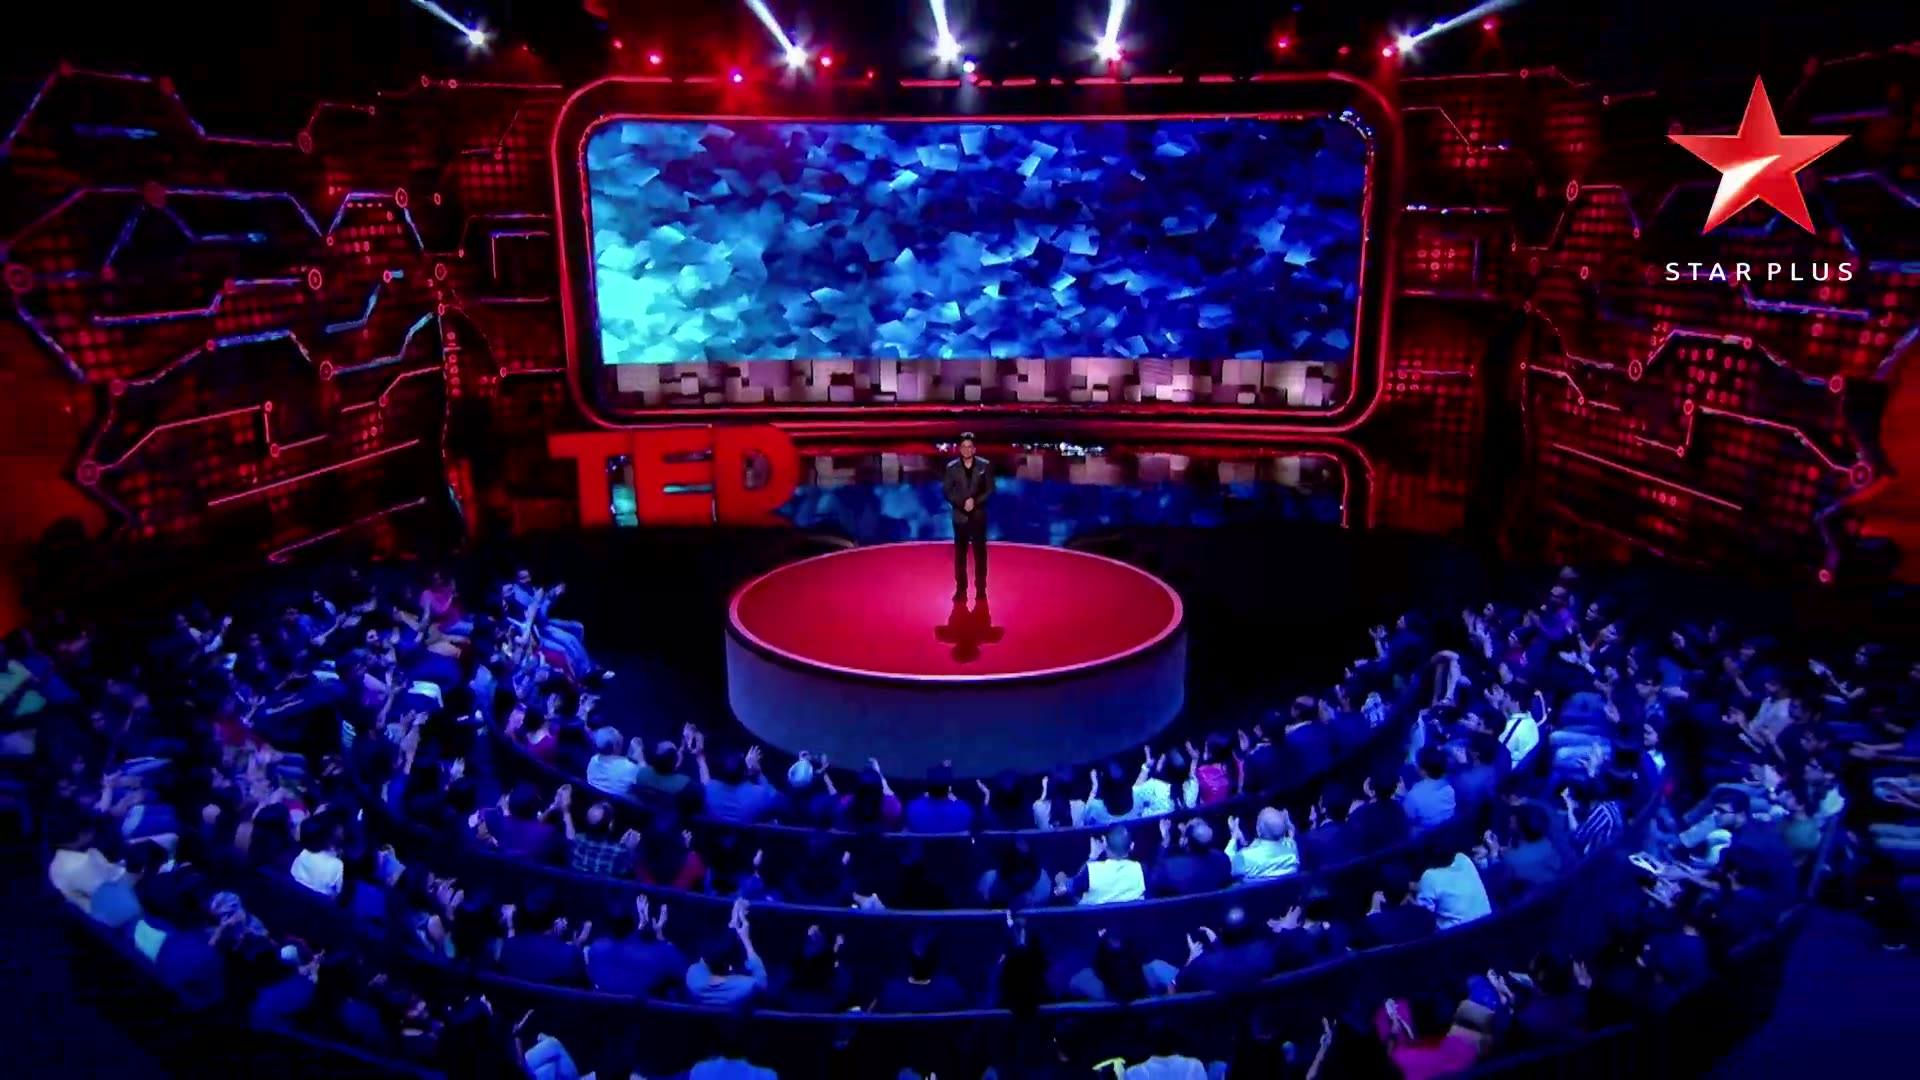 Learning should never stop in the school of life!  #WonderOfLearning on #TEDTalksIndiaNayiSoch Tonight at 7pm on STAR Plus TED 